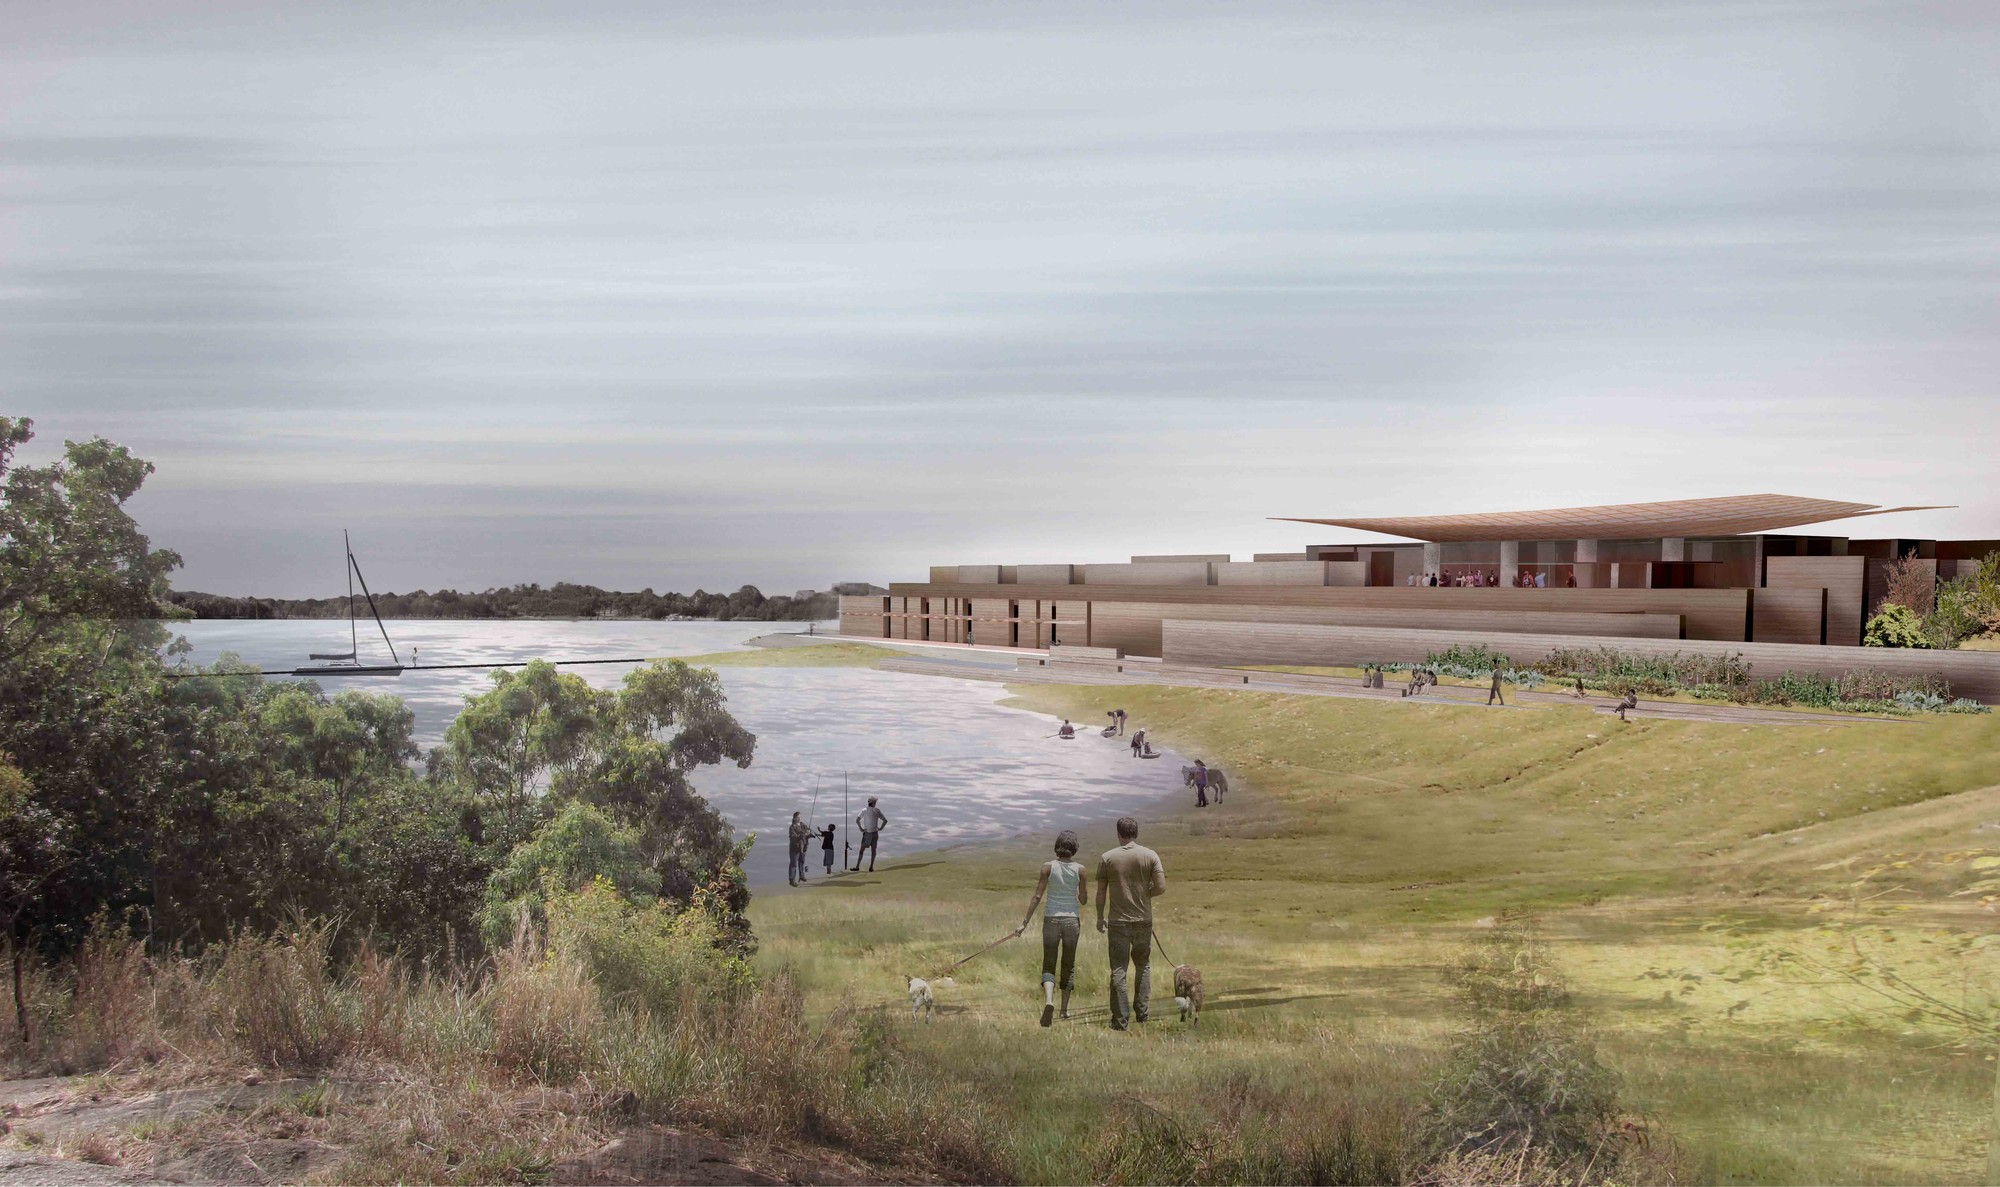 'The Lodge on the Lake' Third Prize Winning Proposal / Nic Moore + Monica Earl, Courtesy of Nic Moore + Monica Earl